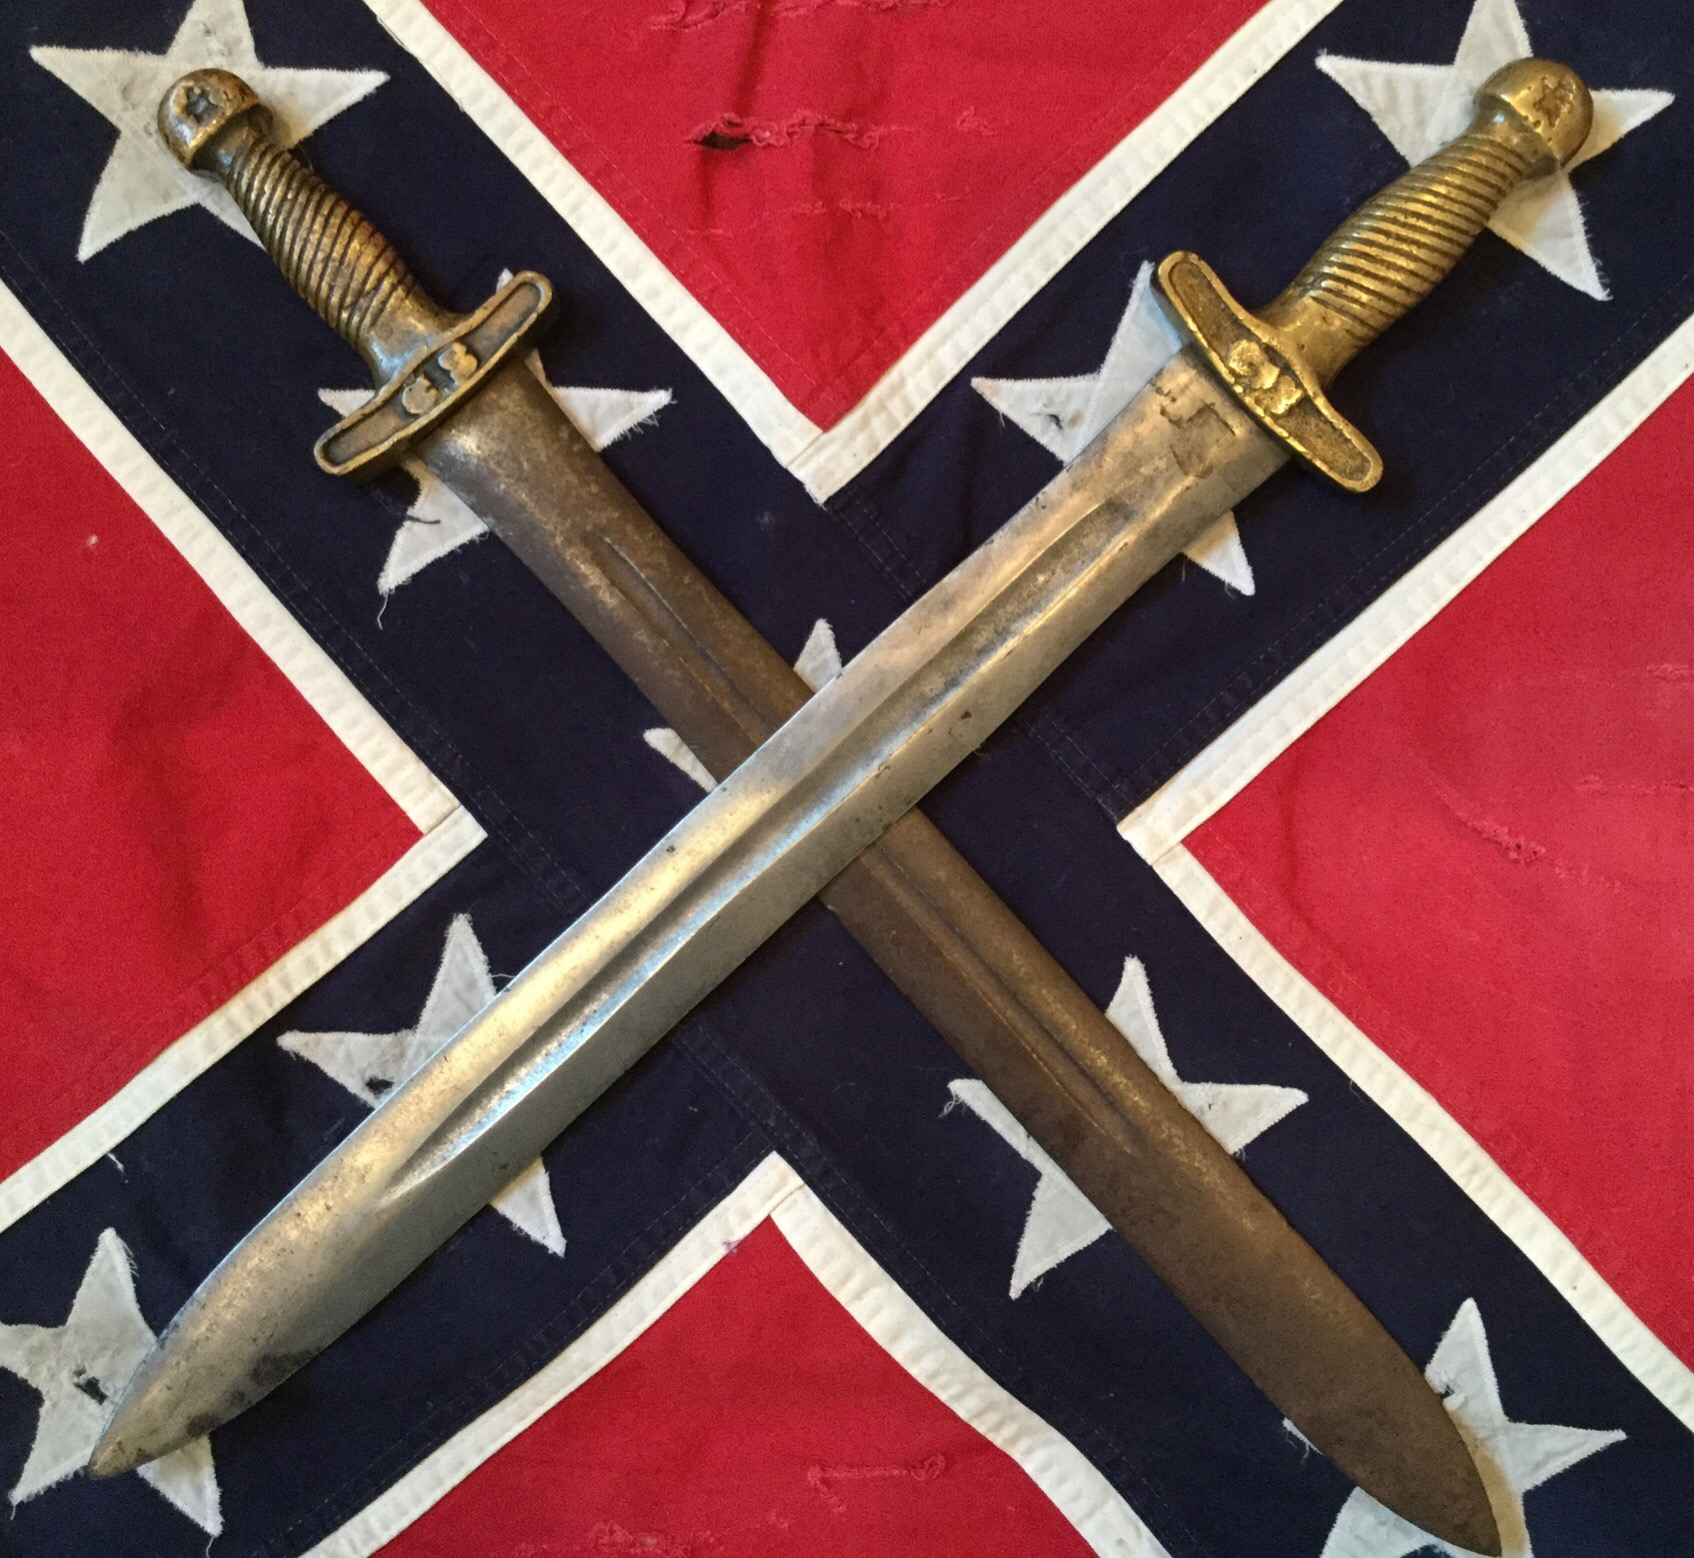 Confederate Artillery Sword, Top is Authentic, Bottom is Fake